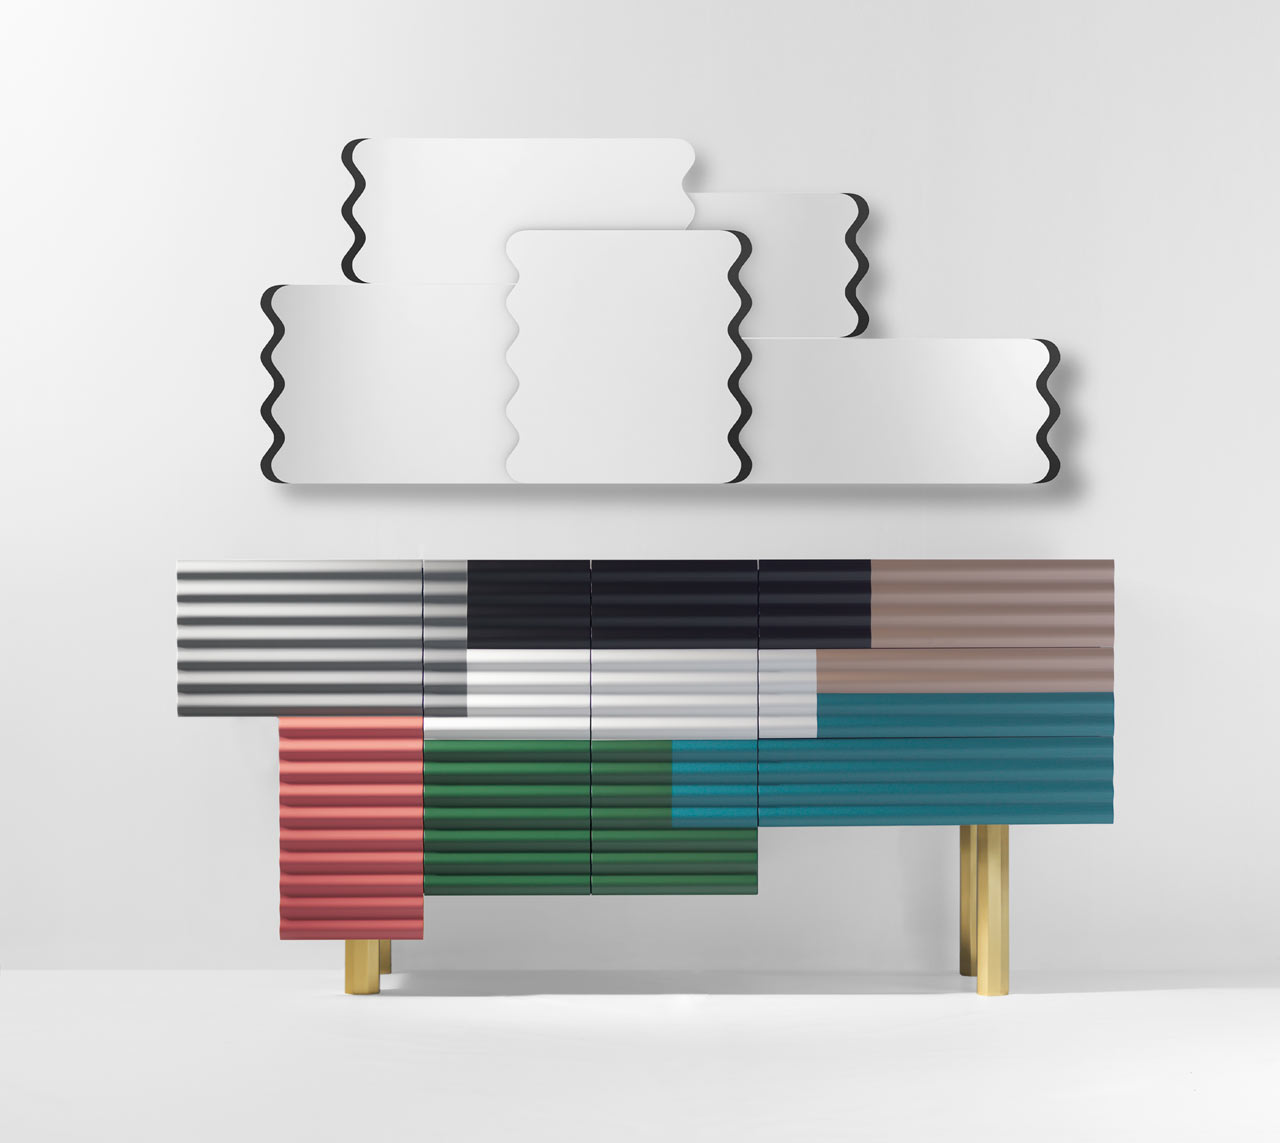 Cabinets with Patchwork Surfaces